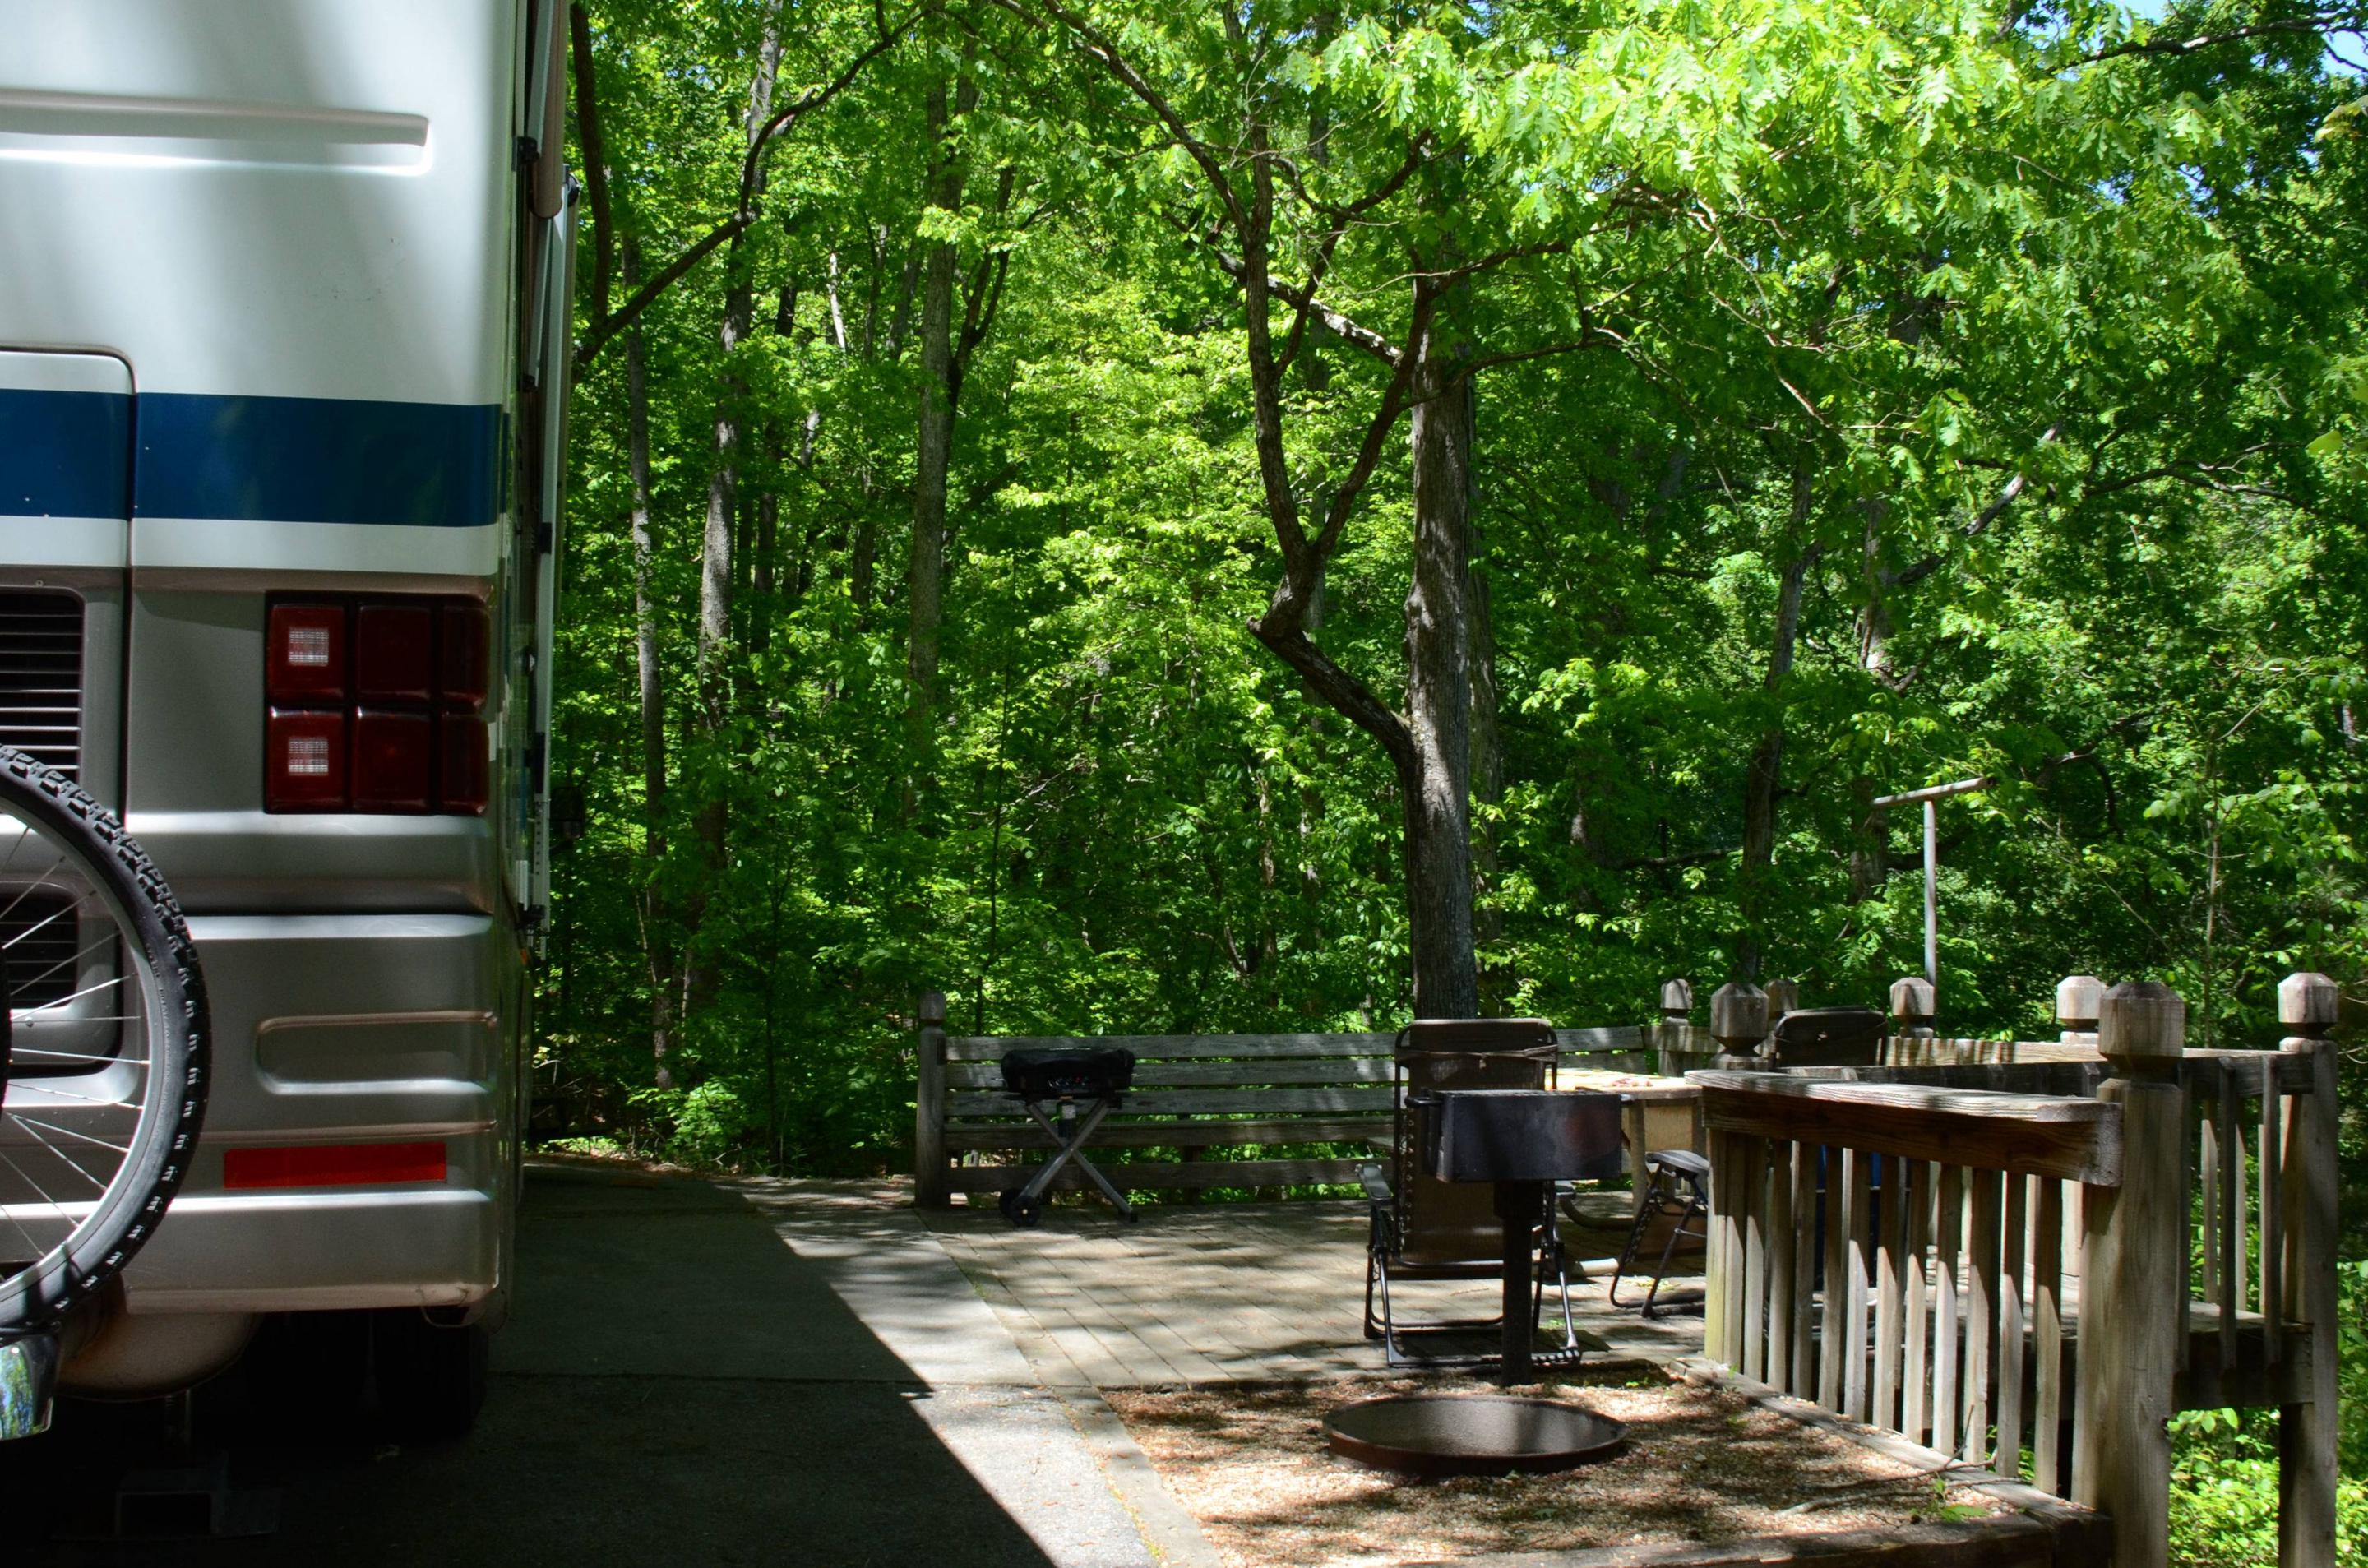 Campsite view, awning-side clearance.McKinney Campground, campsite 149.